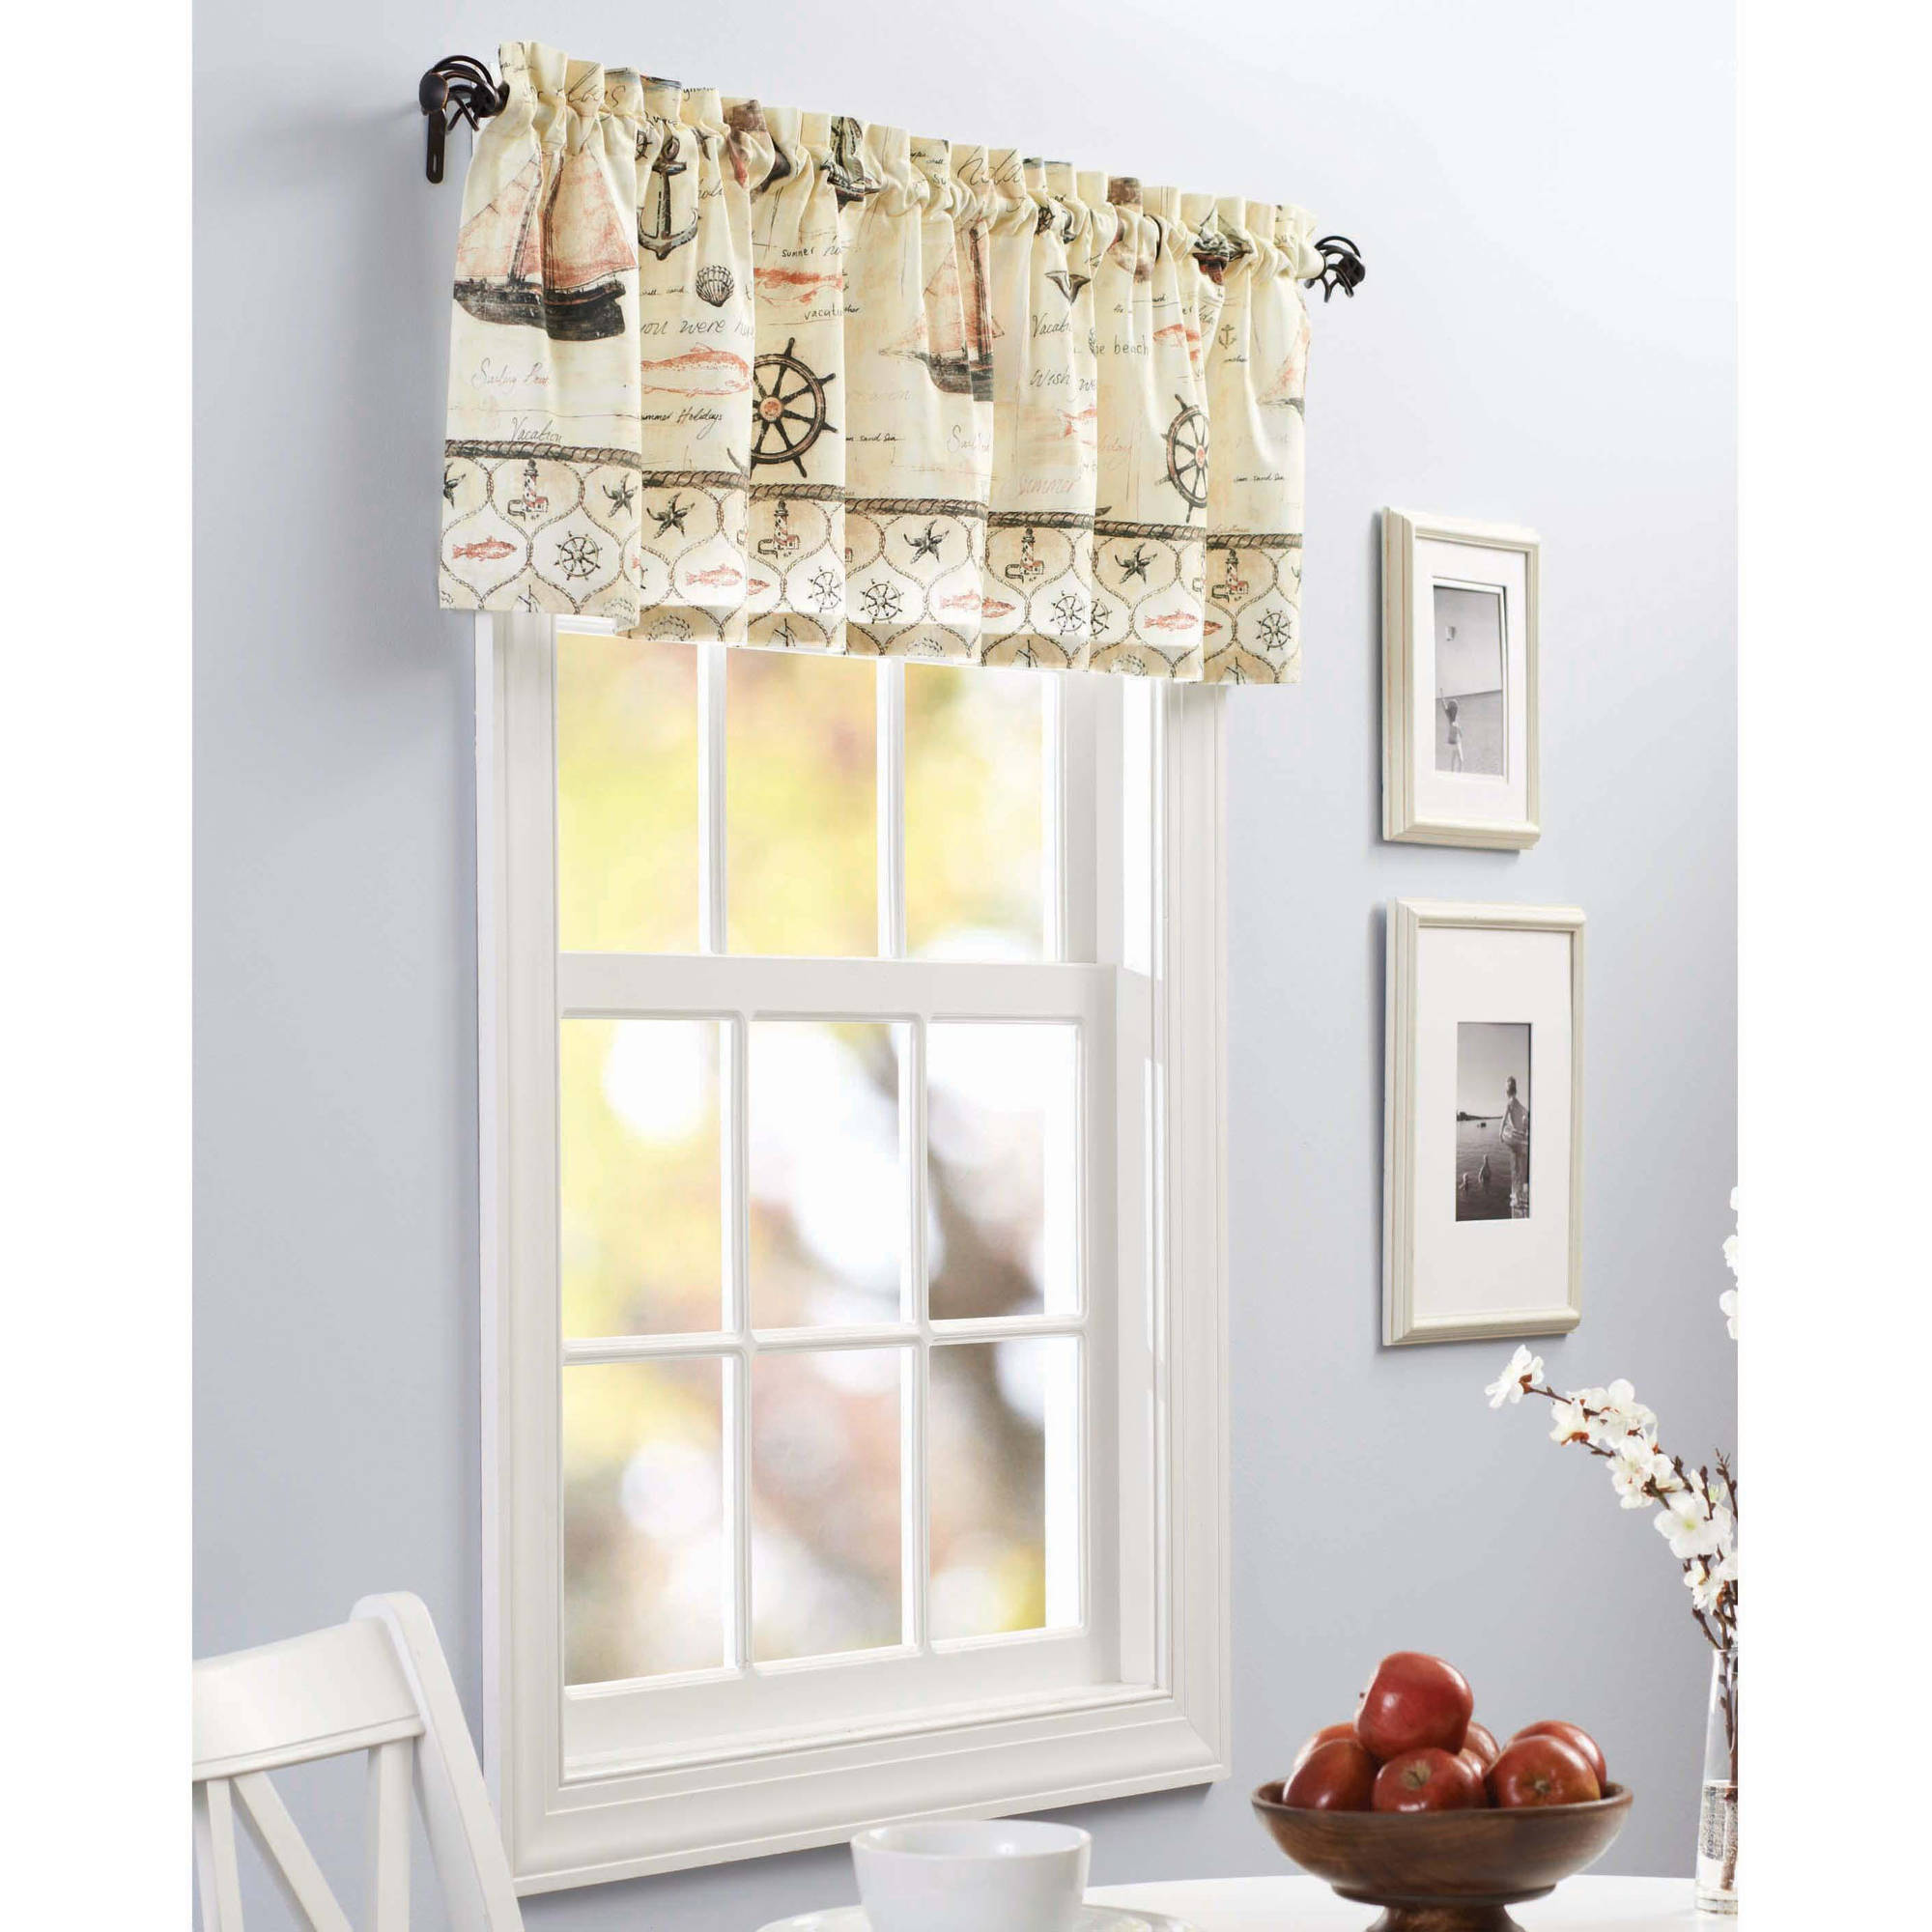 Better Homes and Gardens Nautical Kitchen Curtain Tier Set or Valance